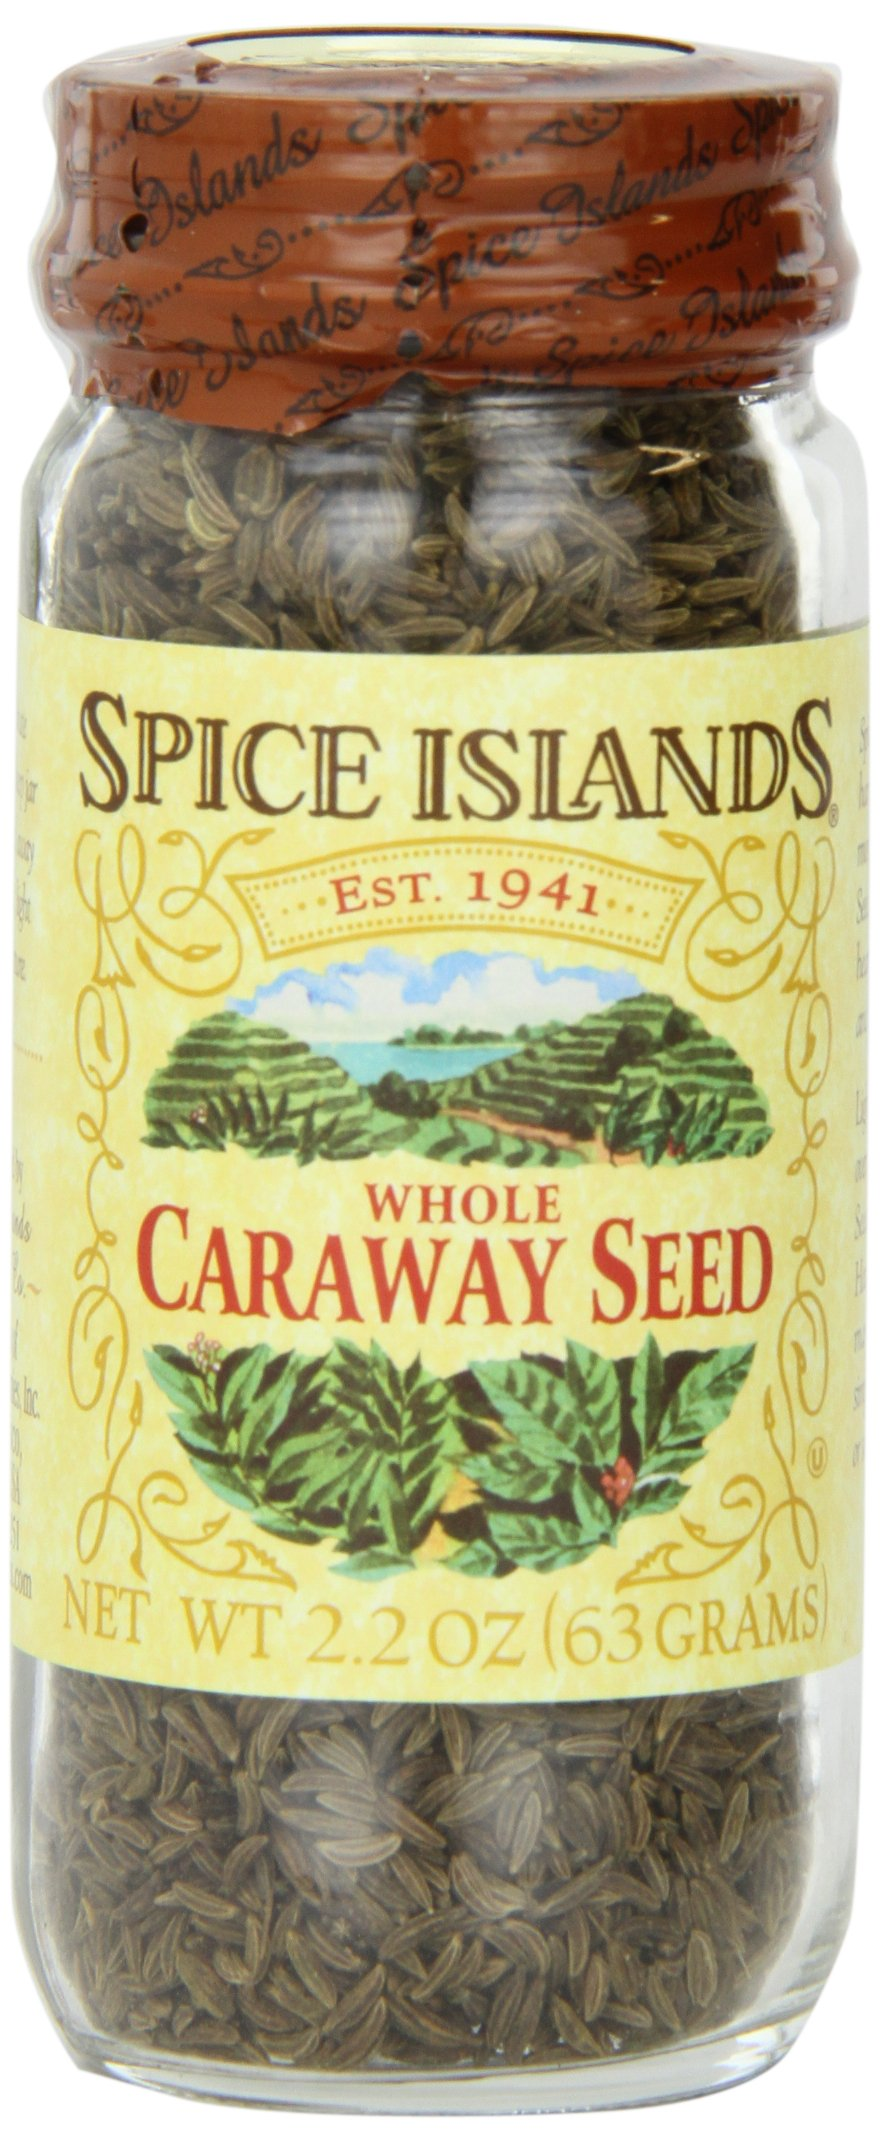 Spice Islands Caraway Seed, Whole, 2.2-Ounce (Pack of 3) by Spice Islands (Image #1)